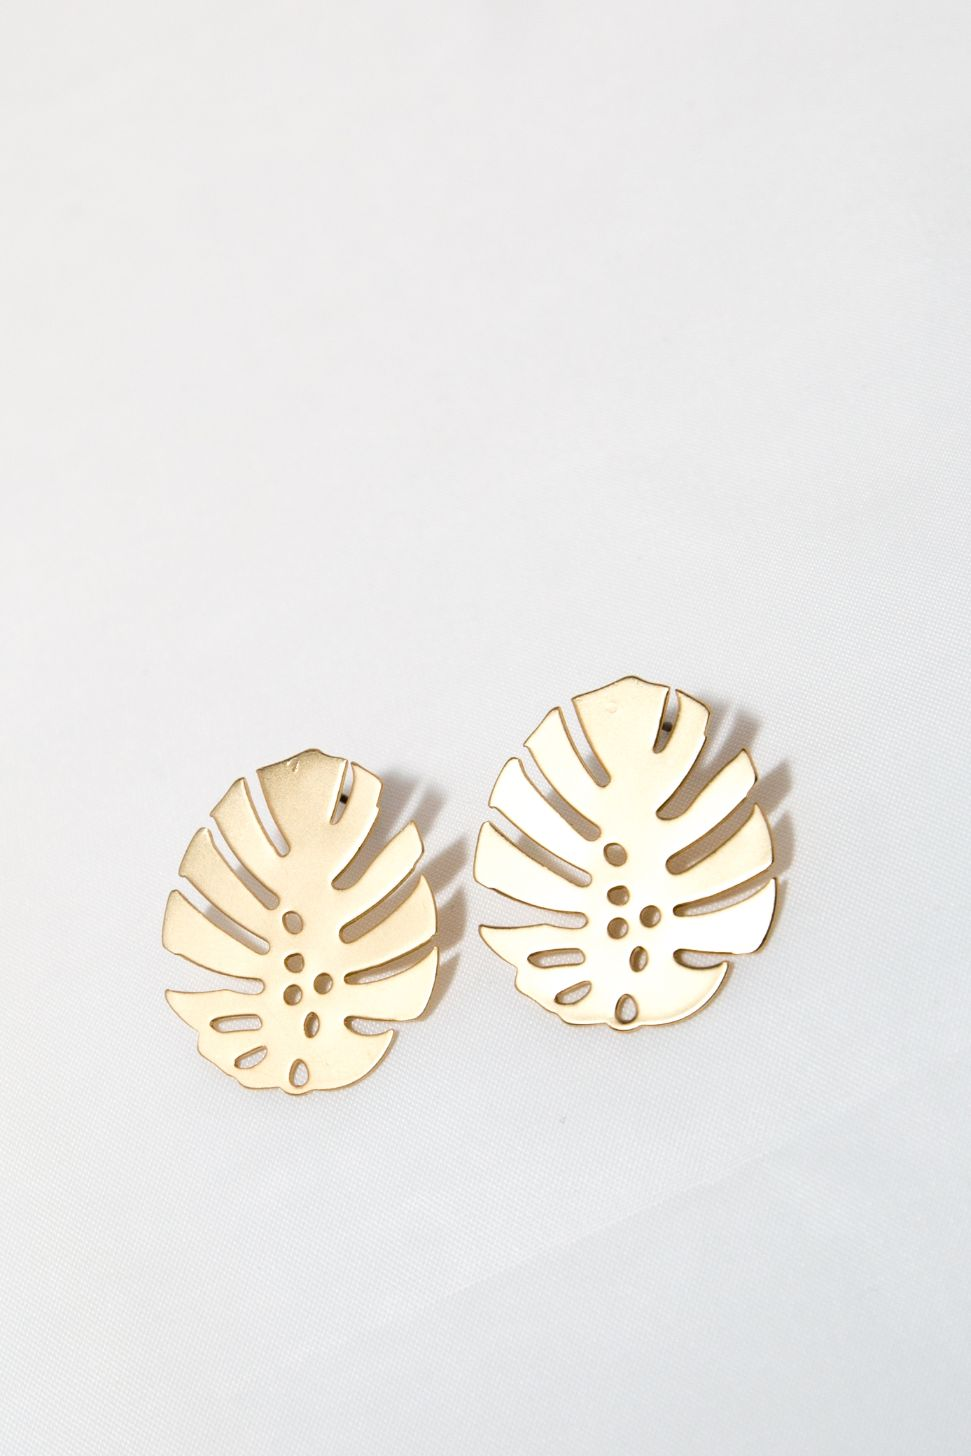 Nook Earring - Gold